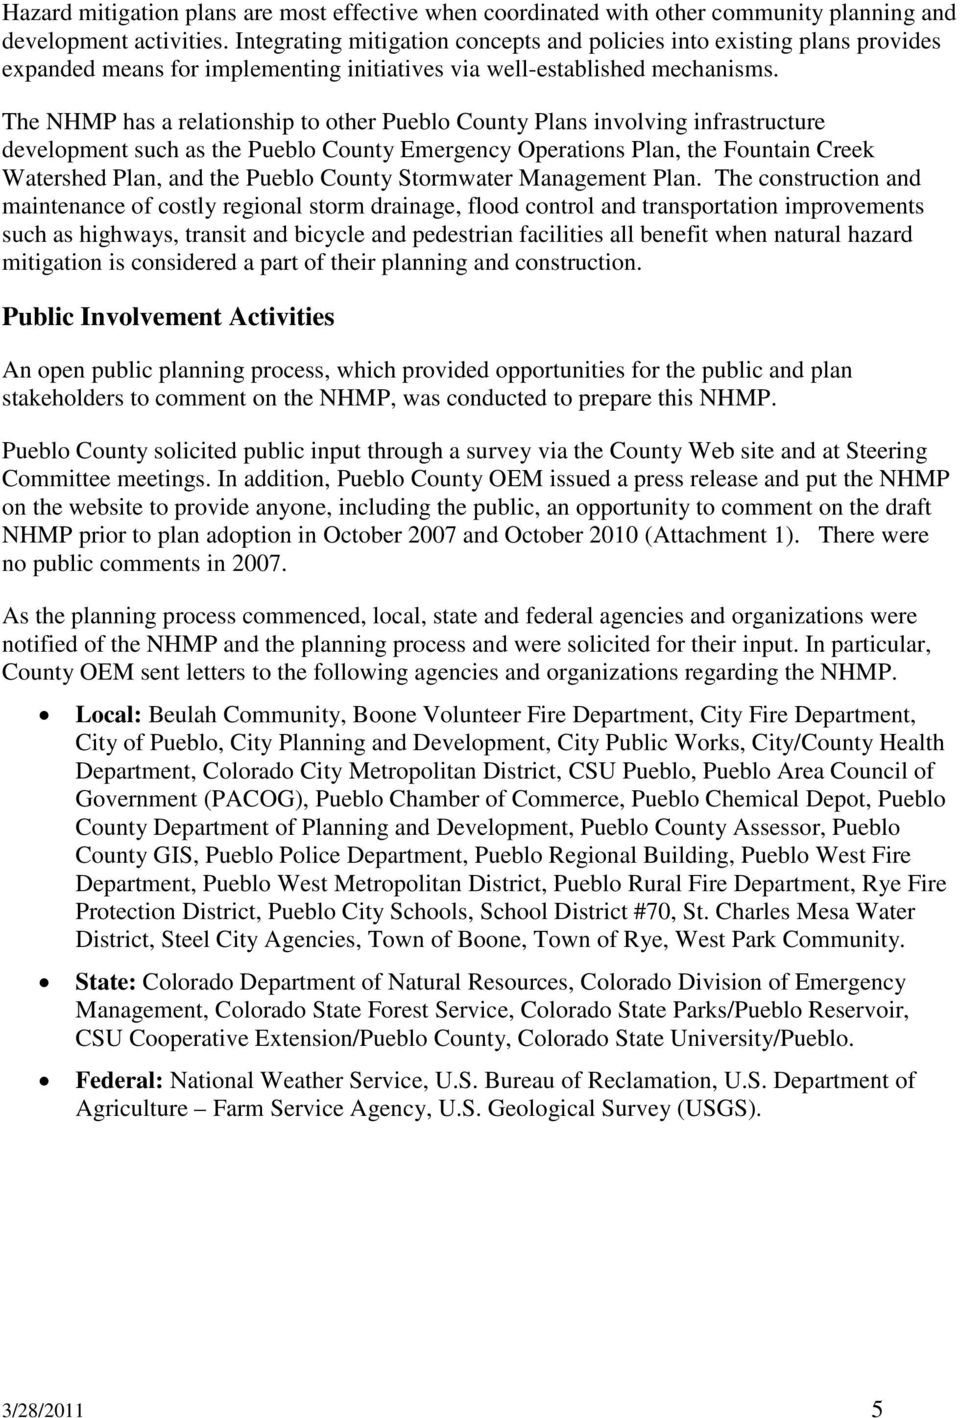 The NHMP has a relationship to other Pueblo County Plans involving infrastructure development such as the Pueblo County Emergency Operations Plan, the Fountain Creek Watershed Plan, and the Pueblo